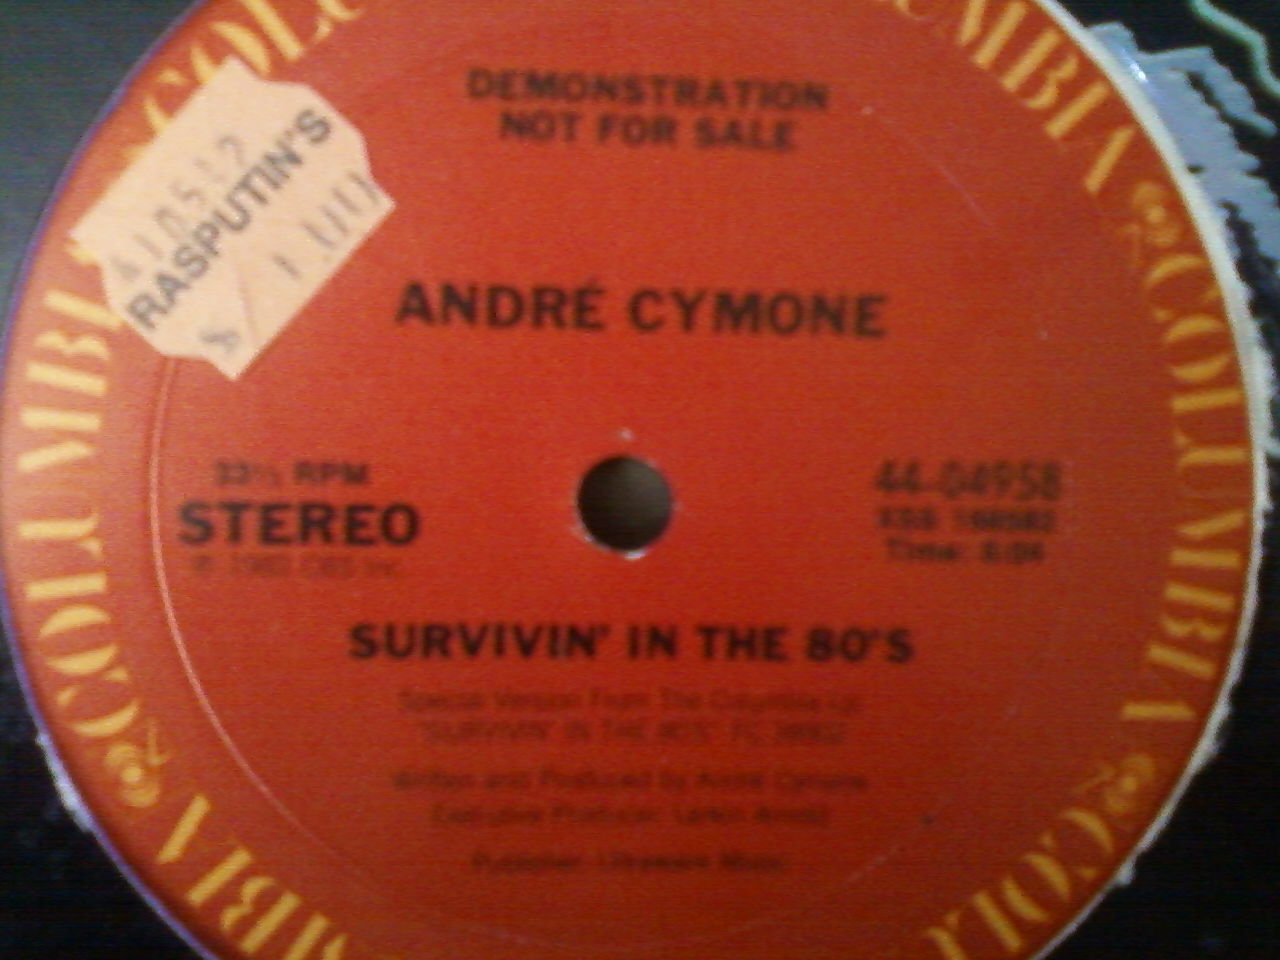 Andre Cymone - Survivin In The 80s -Label